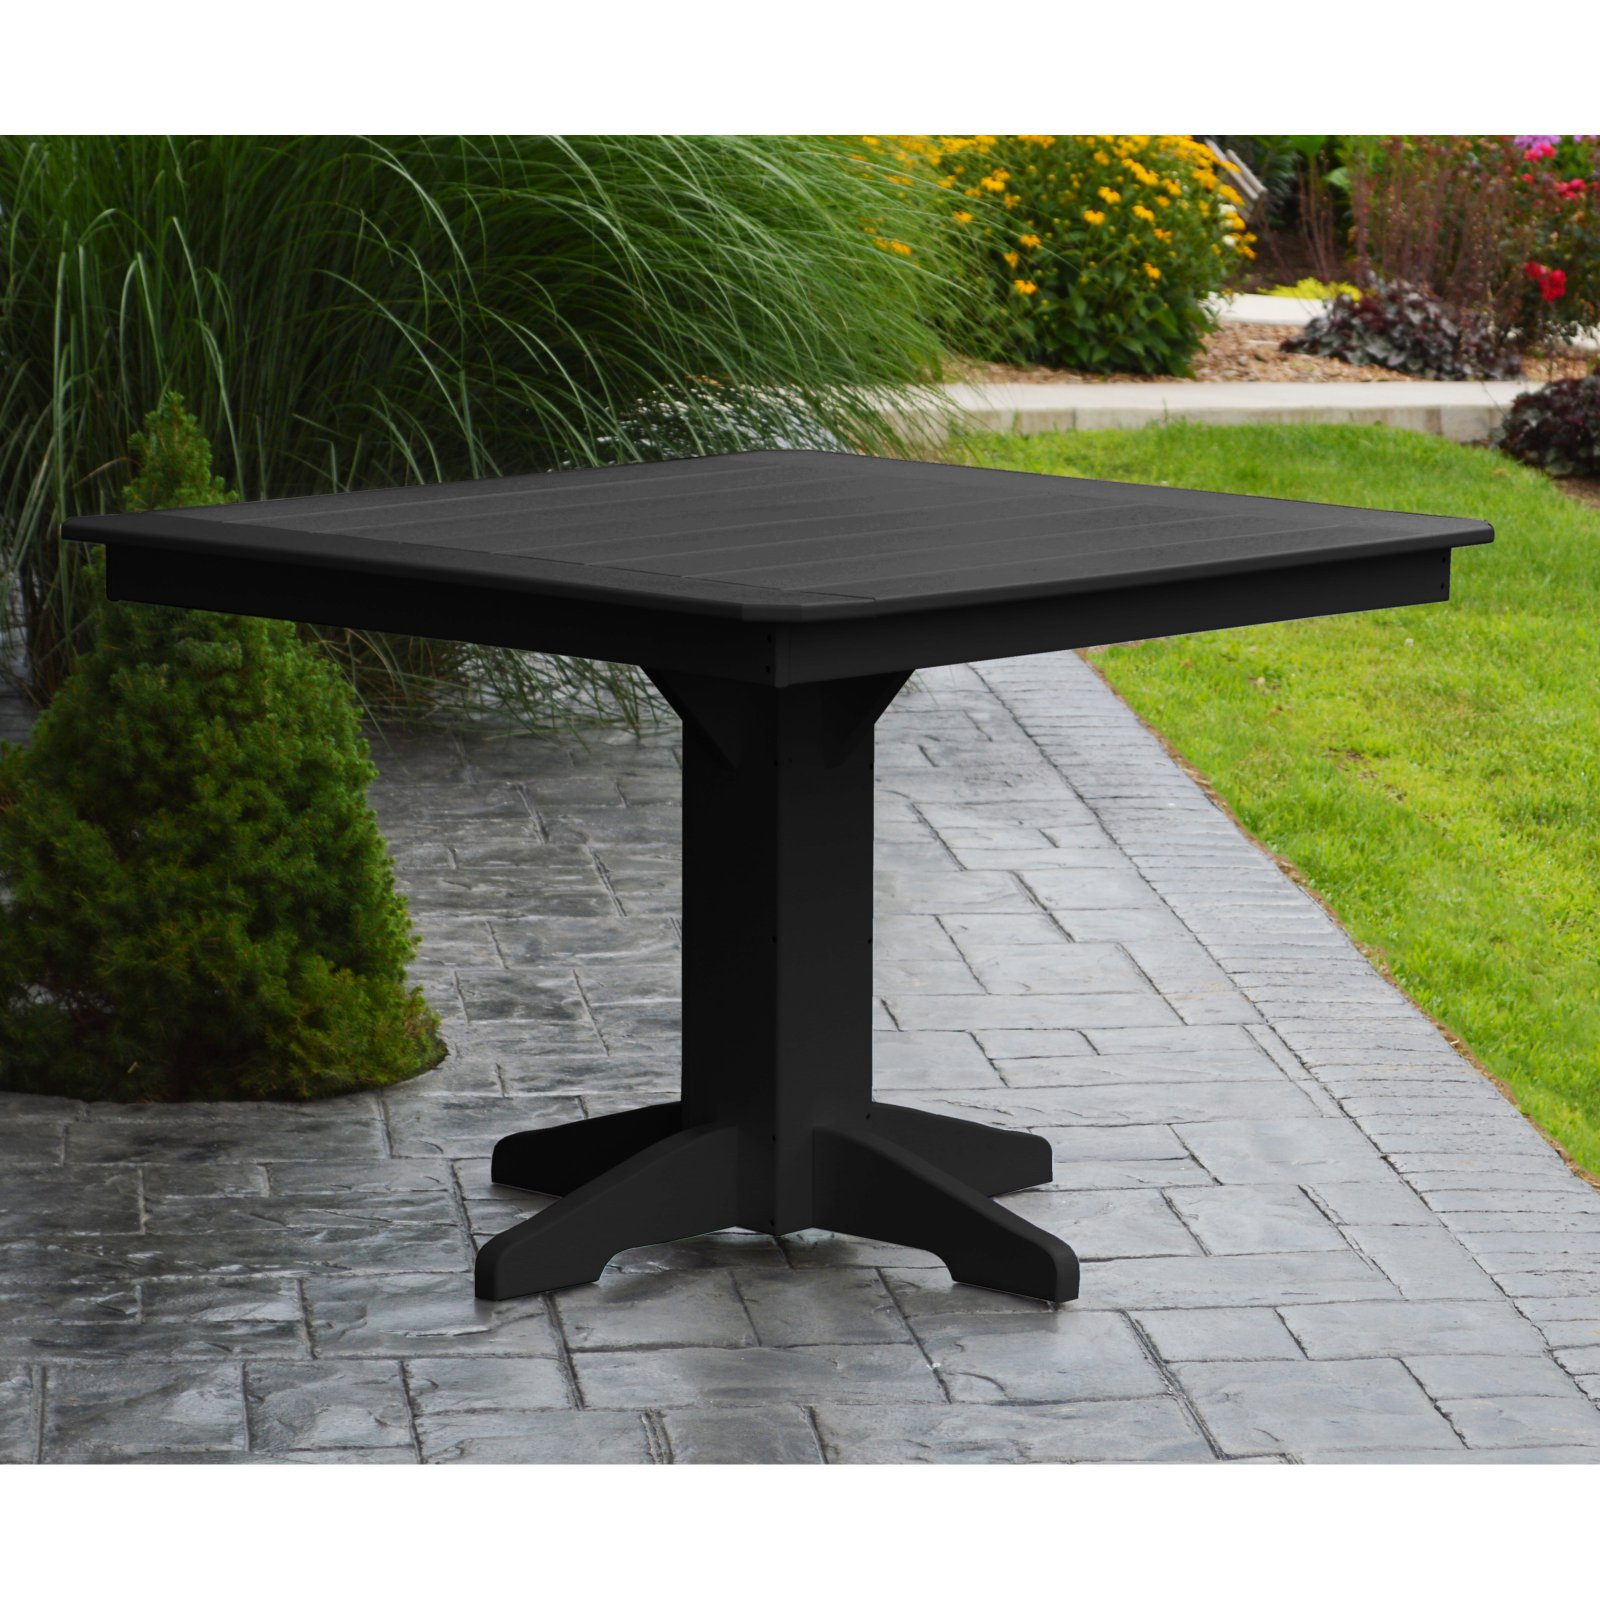 Radionic Hi Tech Newport Recycled Plastic Square Bar Height Patio